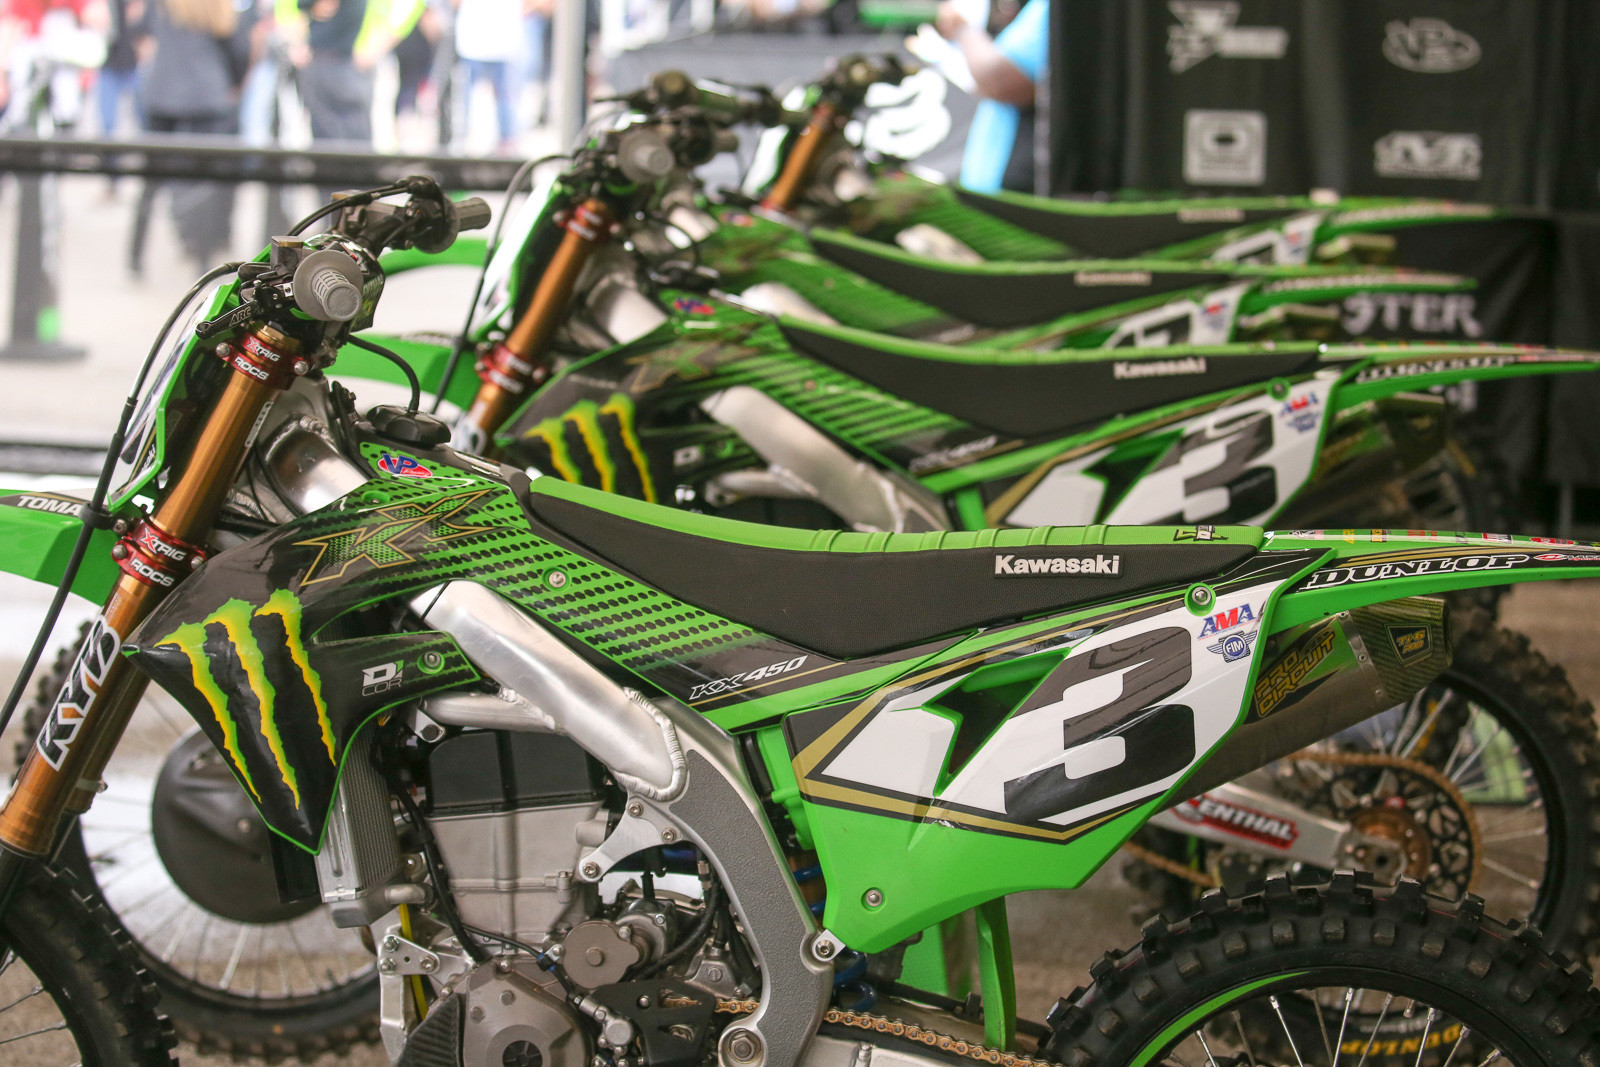 Yep, it's the final Triple Crown race of the year, so it's also the final double-bike weekend. The Monster Energy Kawasaki guys rode press day on Friday, and while Eli didn't really say they tried two different setups, they did bring out both bikes to ride.